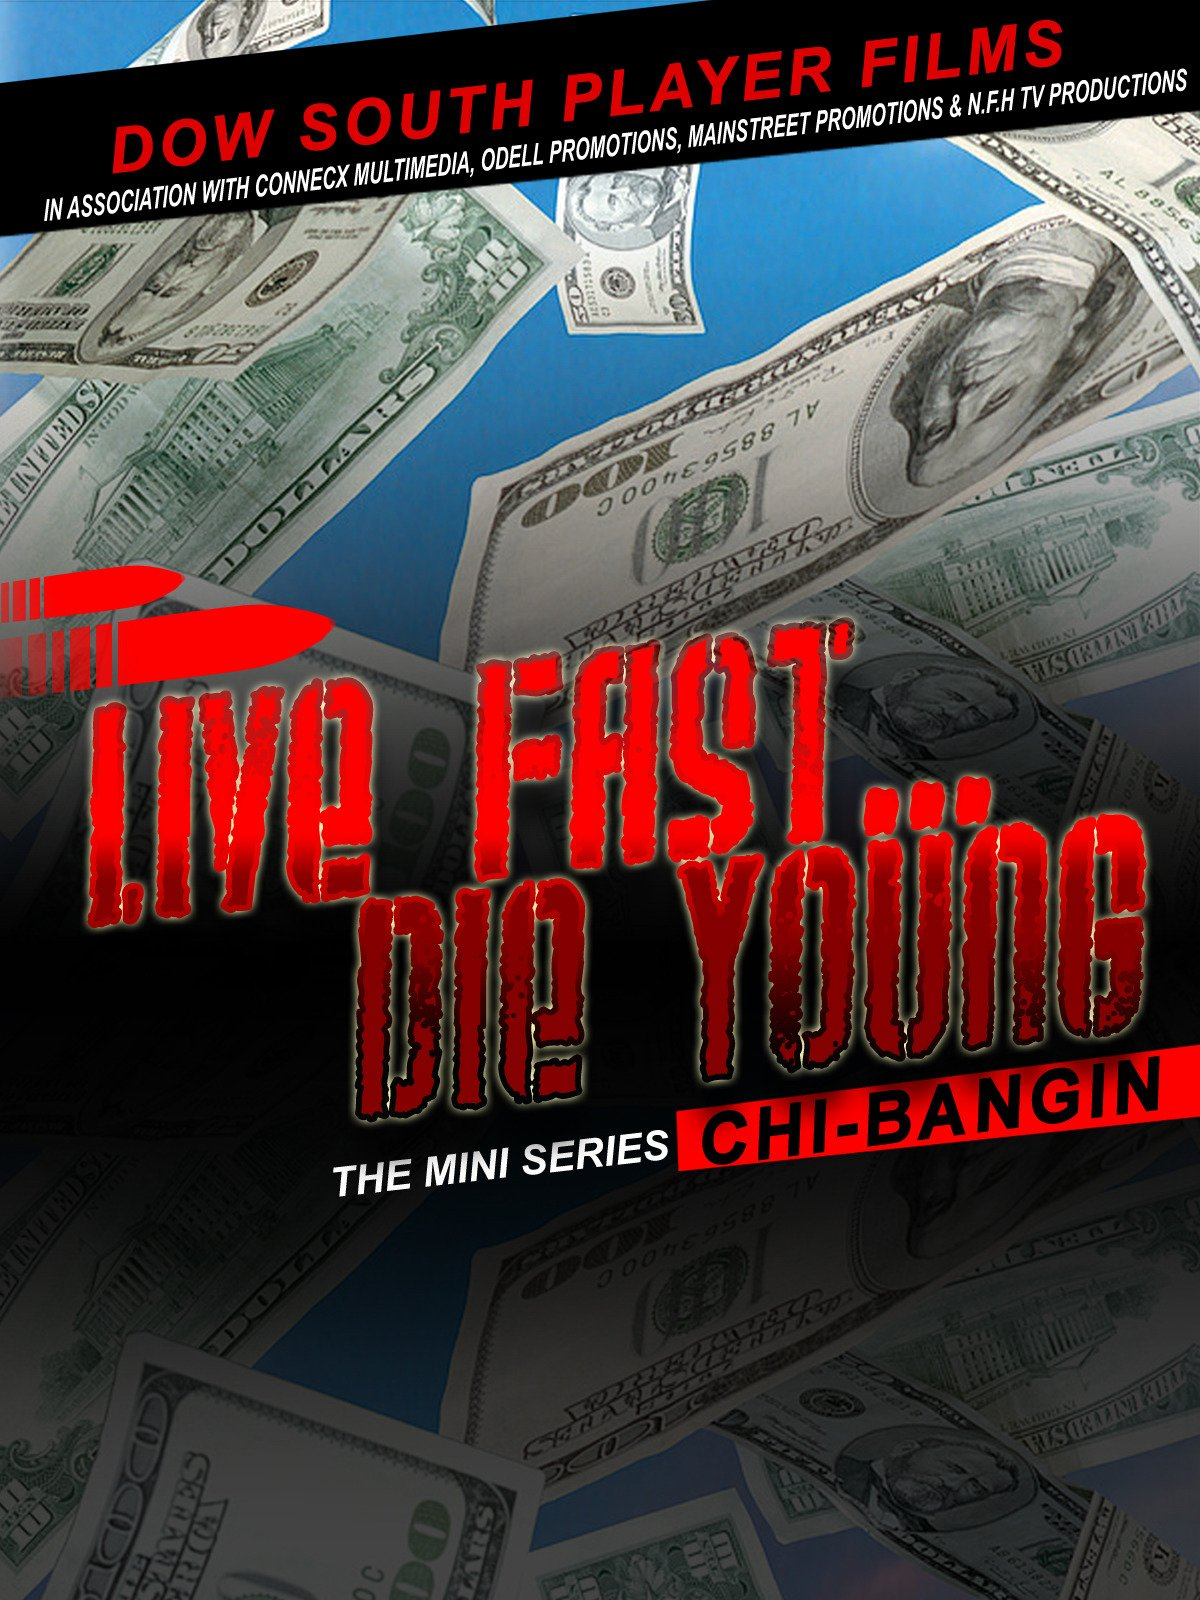 Live Fast Die Young Chi-bangin